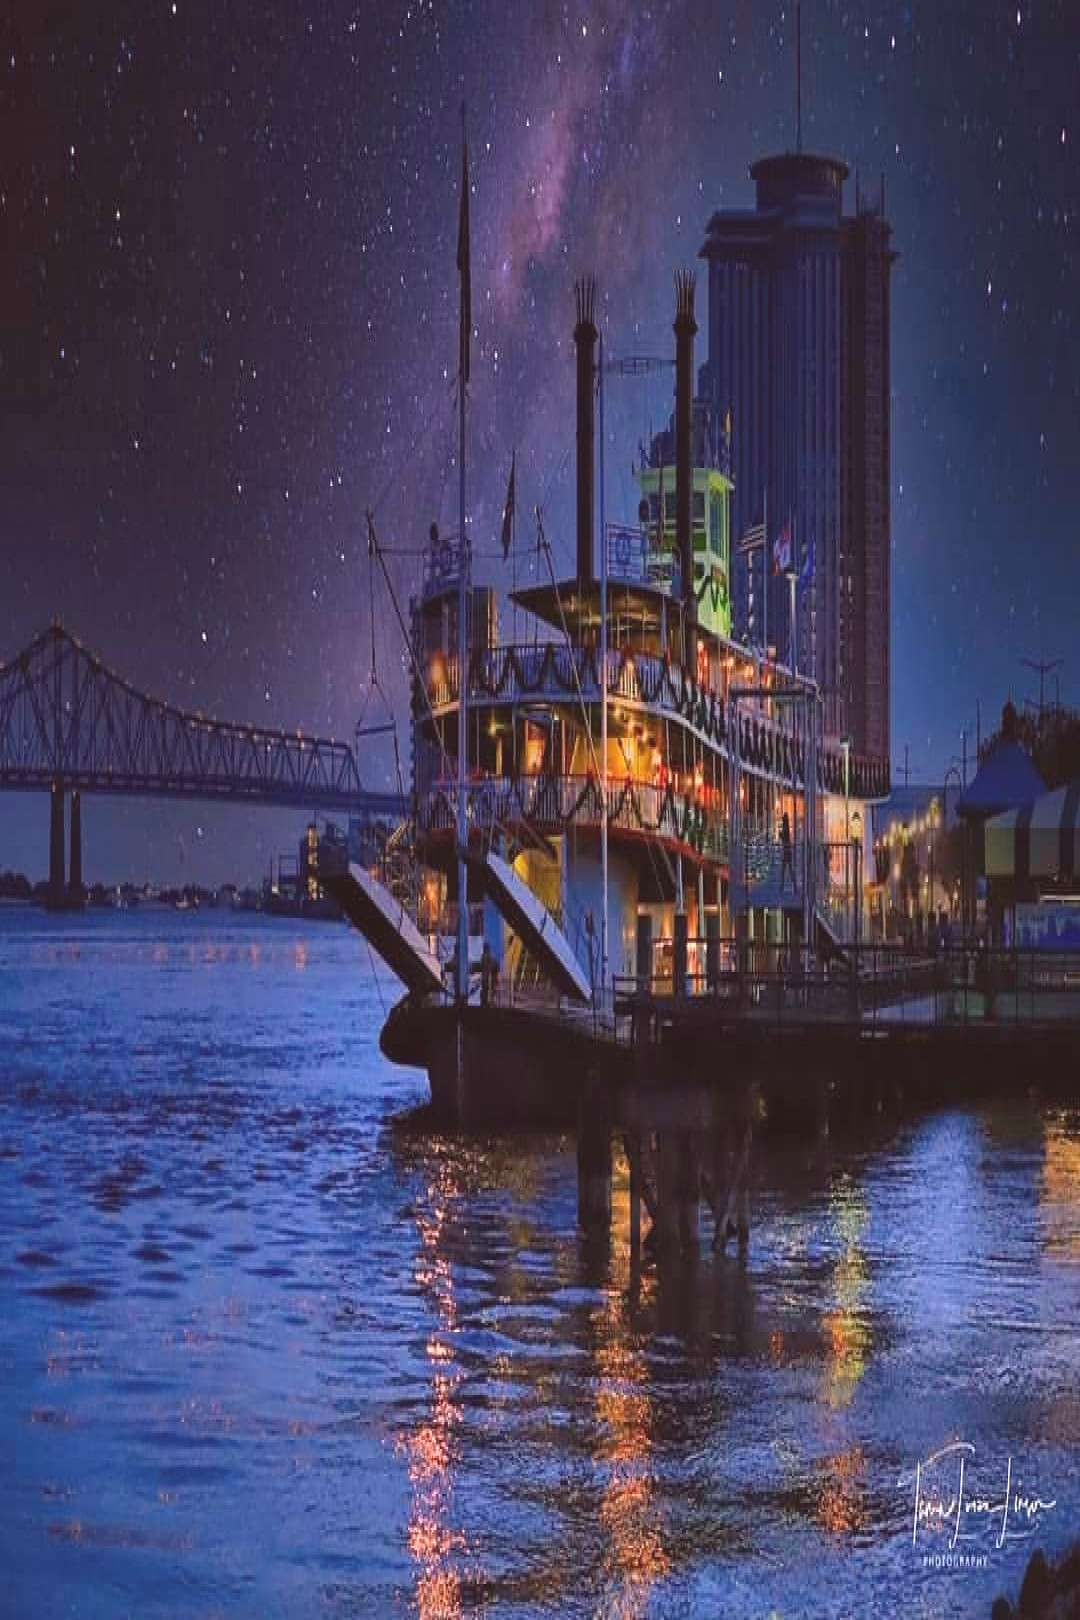 #mississippiriver #skynightoutdoor #mississippi #orleans #river #water #new #and New Orleans and Mississippi River #mississippiriver #mississippi You can find Boats and more on our website.New Orleans and Mississippi River #mississippirive...